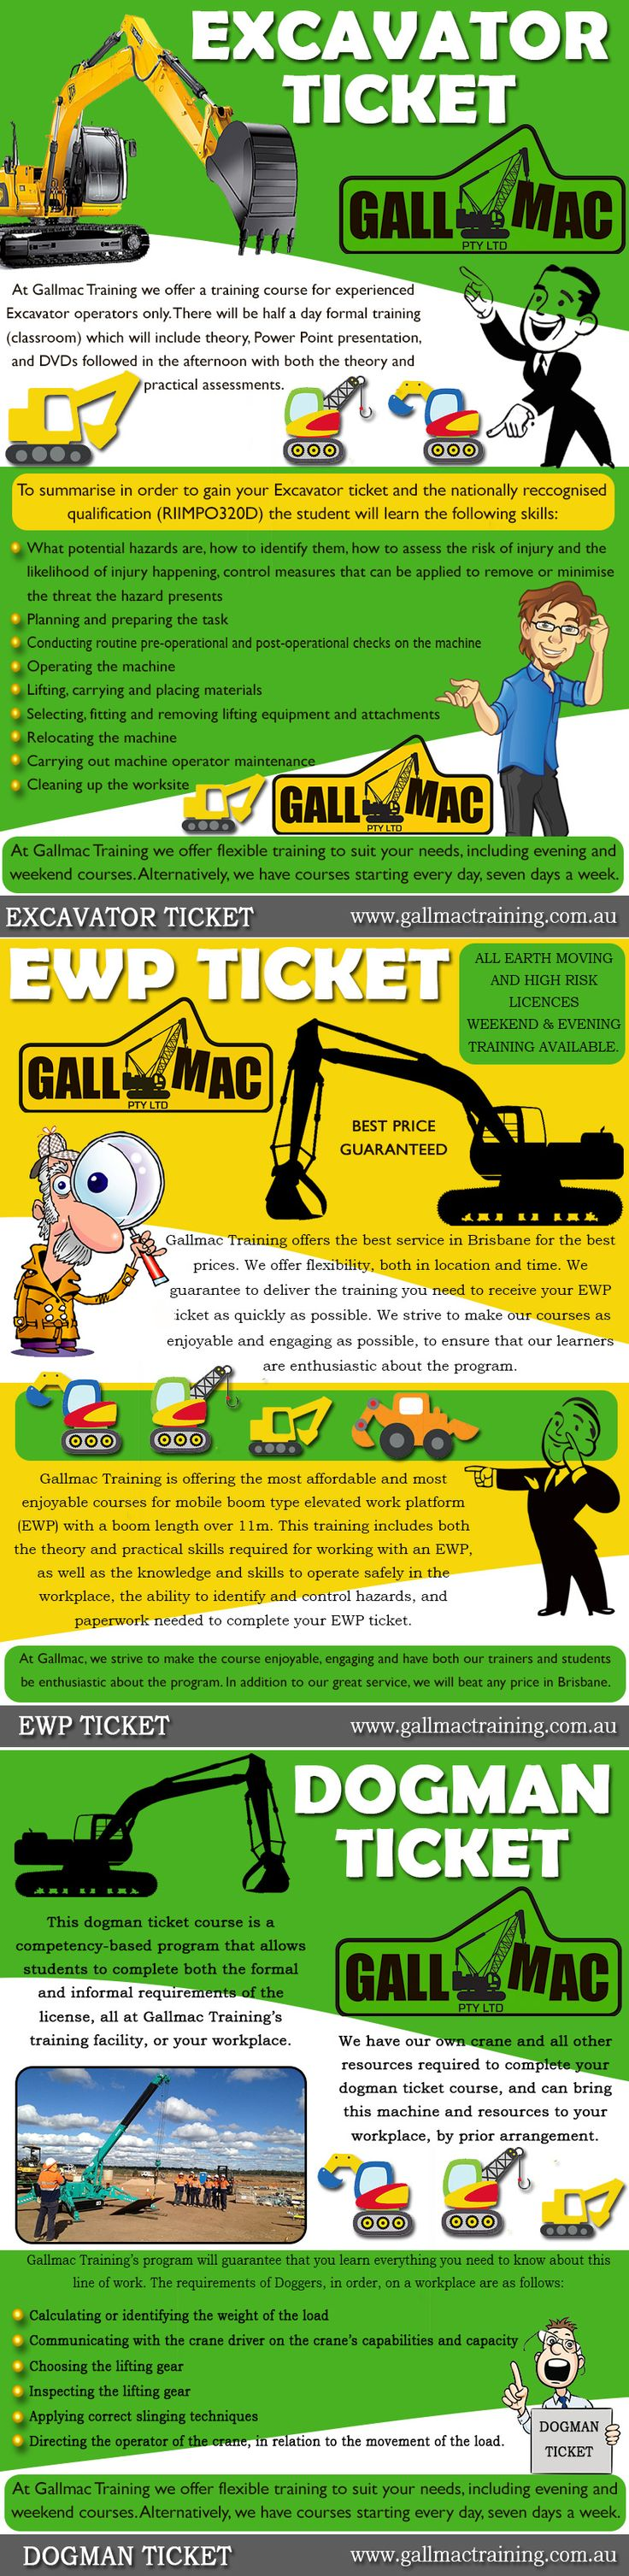 Visit this site http://www.gallmactraining.com.au/excavator-ticket/ for more information on Excavator Ticket.This is your Excavator Ticket or license and will enable you to operate an excavator in any quarry, mine site or civil construction site in Australia. Over the duration of Gallmac Training's EWP Ticket program, learners will gain the knowledge. Browse this site http://www.gallmactraining.com.au/ewp-ticket/ for more information on EWP Ticket.